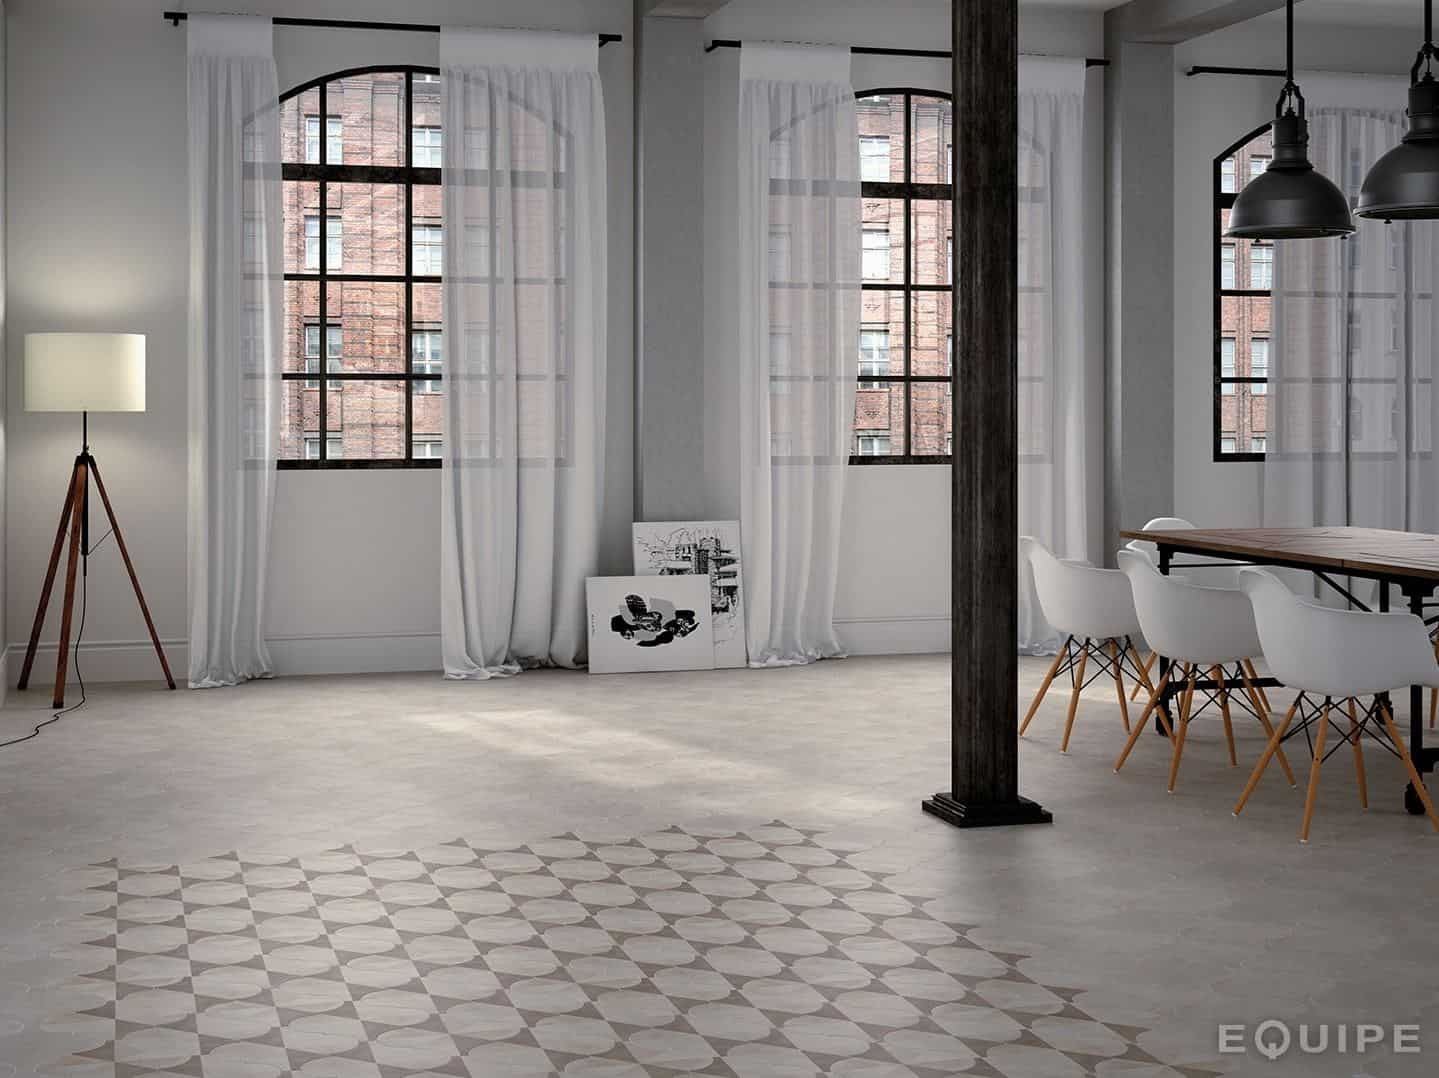 21 arabesque tile ideas for floor wall and backsplash view in gallery arabesque shaped tile faux carpet equipe 16g dailygadgetfo Image collections